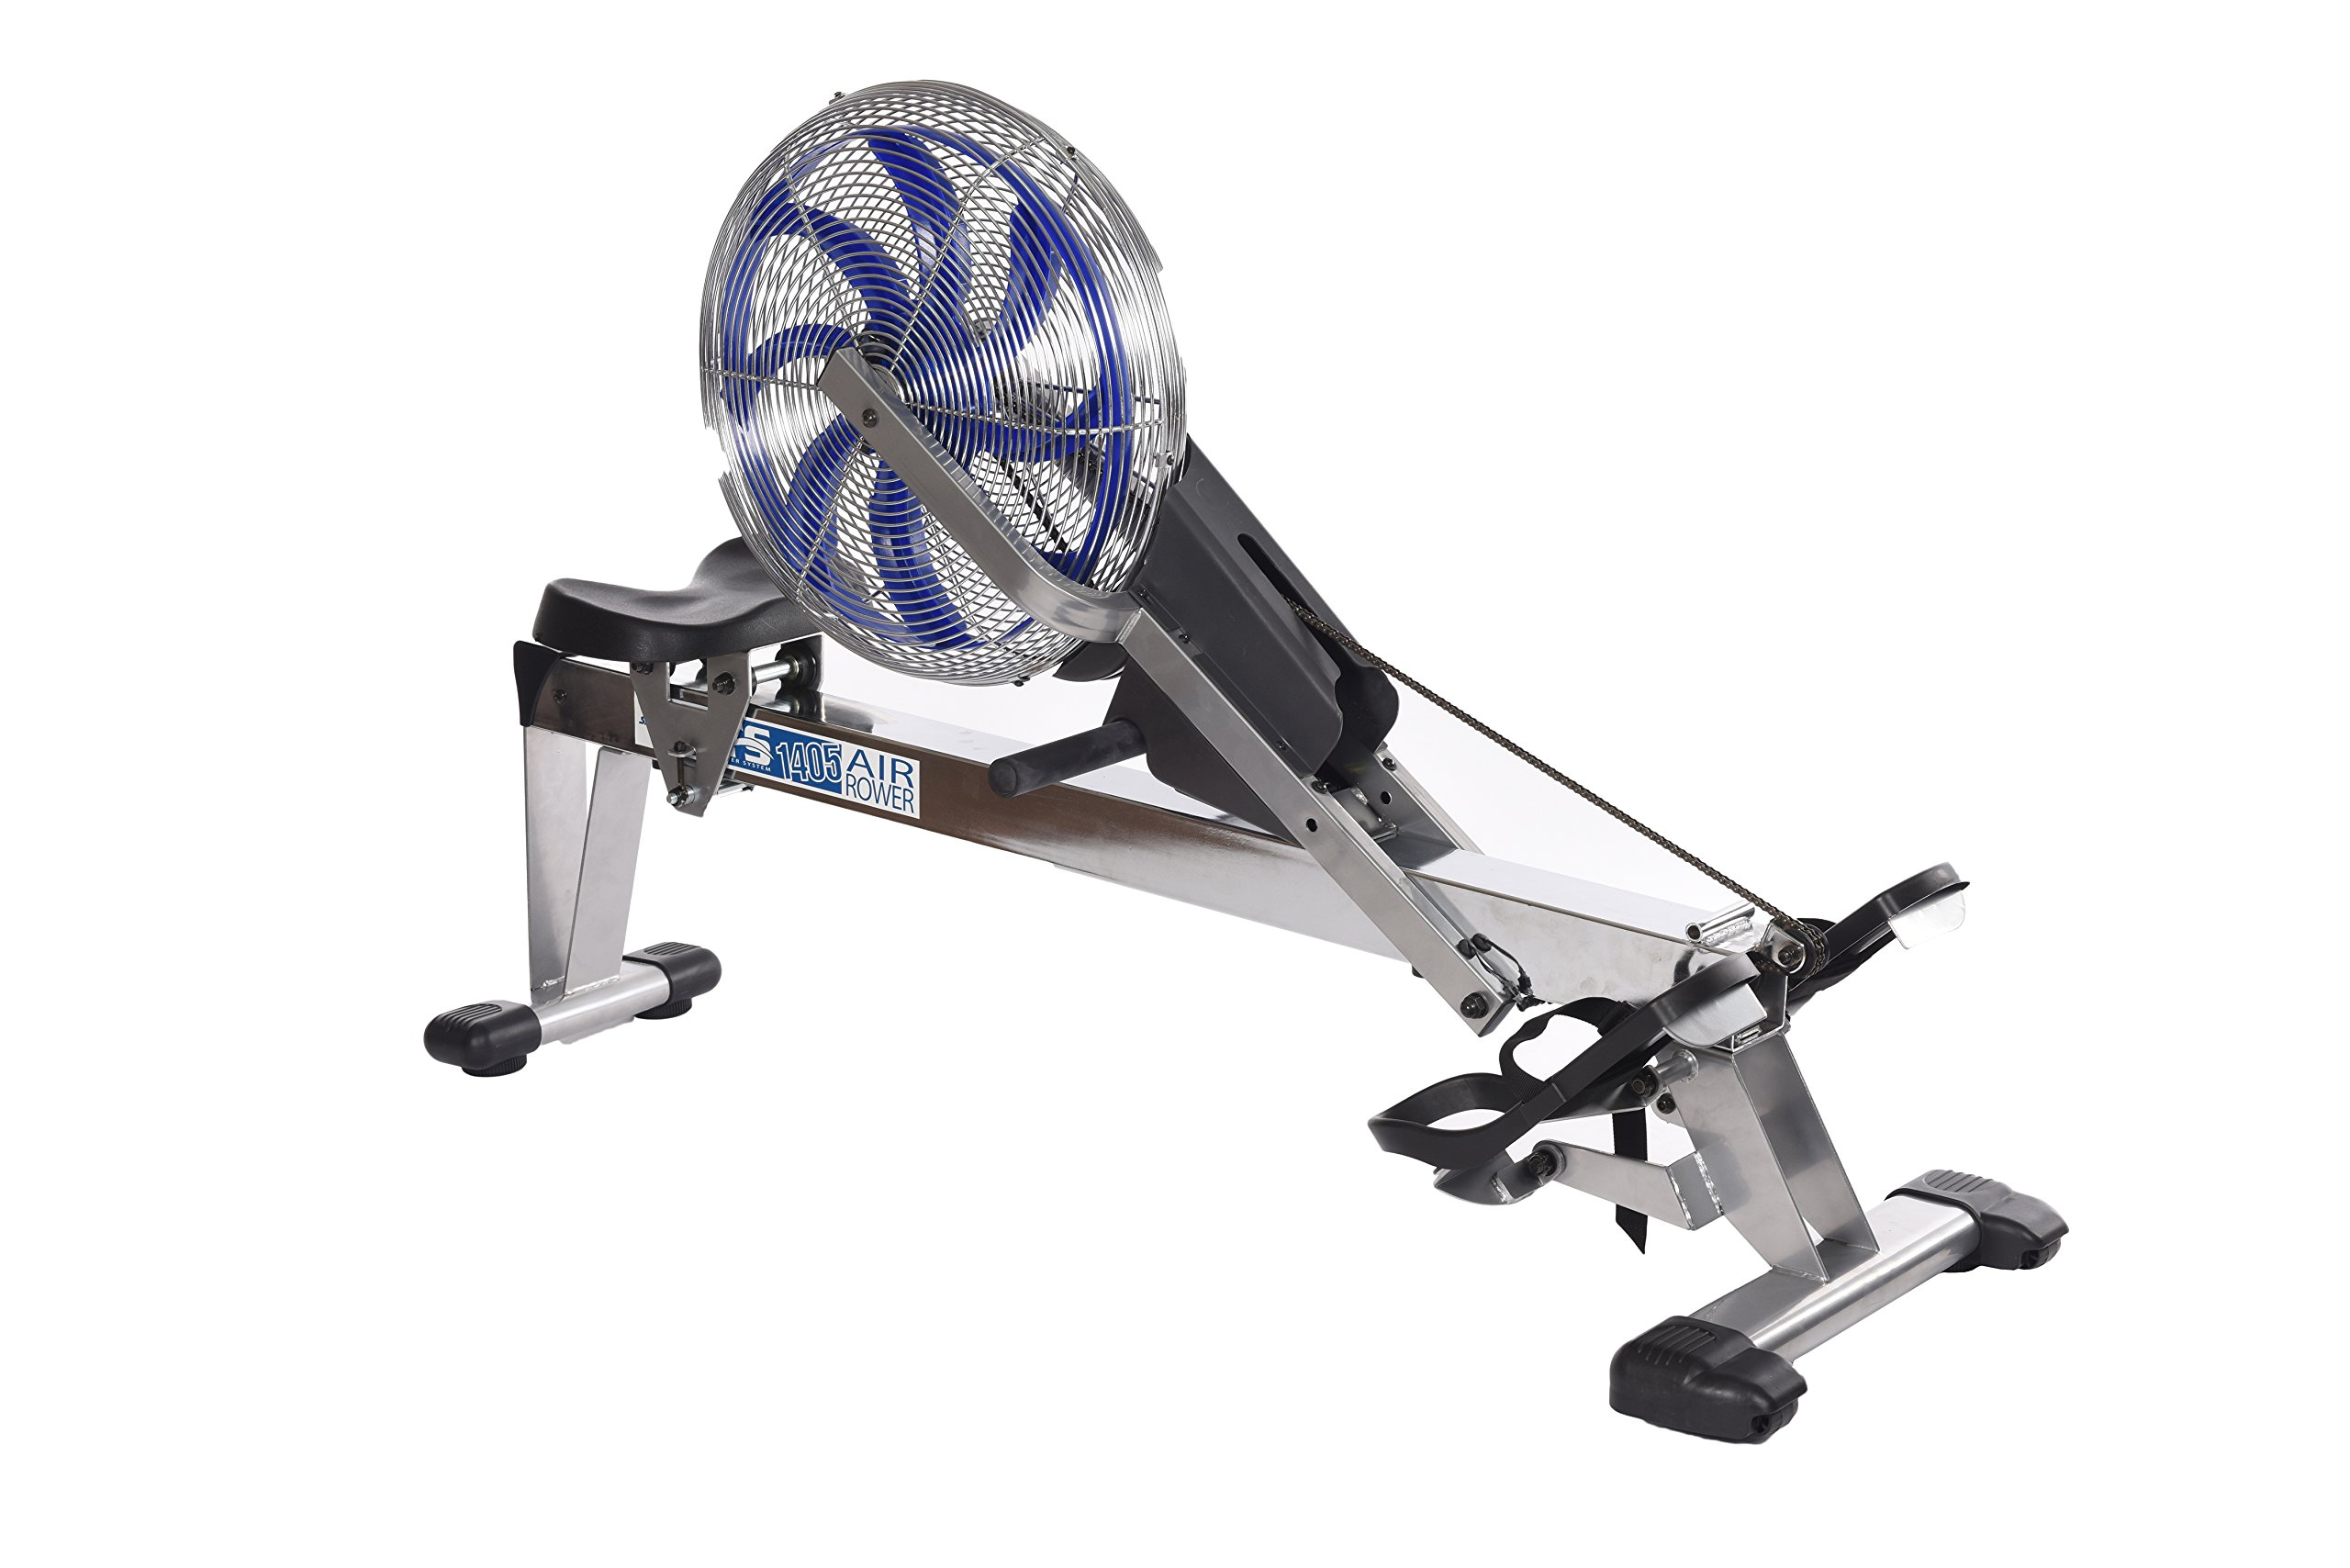 Stamina 35-1405 ATS Air Rower 1405 Rowing Machine, Air Resistance, LCD Fitness Monitor, Folding and Built-in Wheels, Chrome/Blue/Black by Stamina (Image #9)